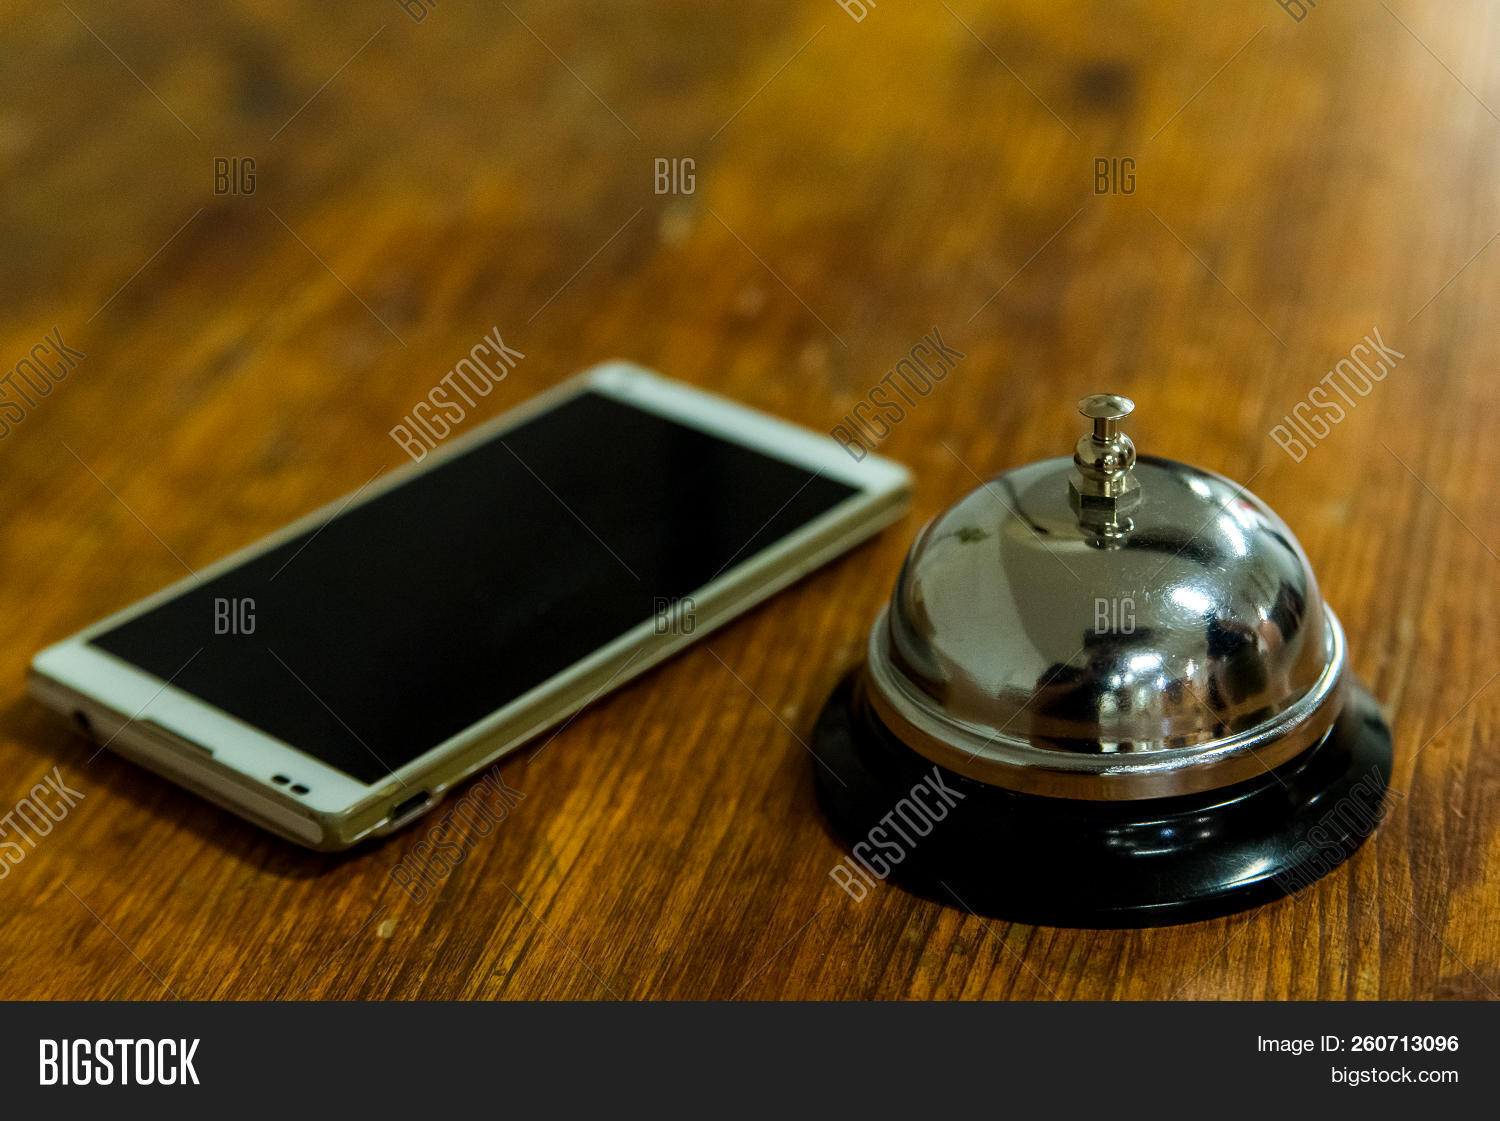 Fabulous Hotel Service Call Image Photo Free Trial Bigstock Home Interior And Landscaping Oversignezvosmurscom